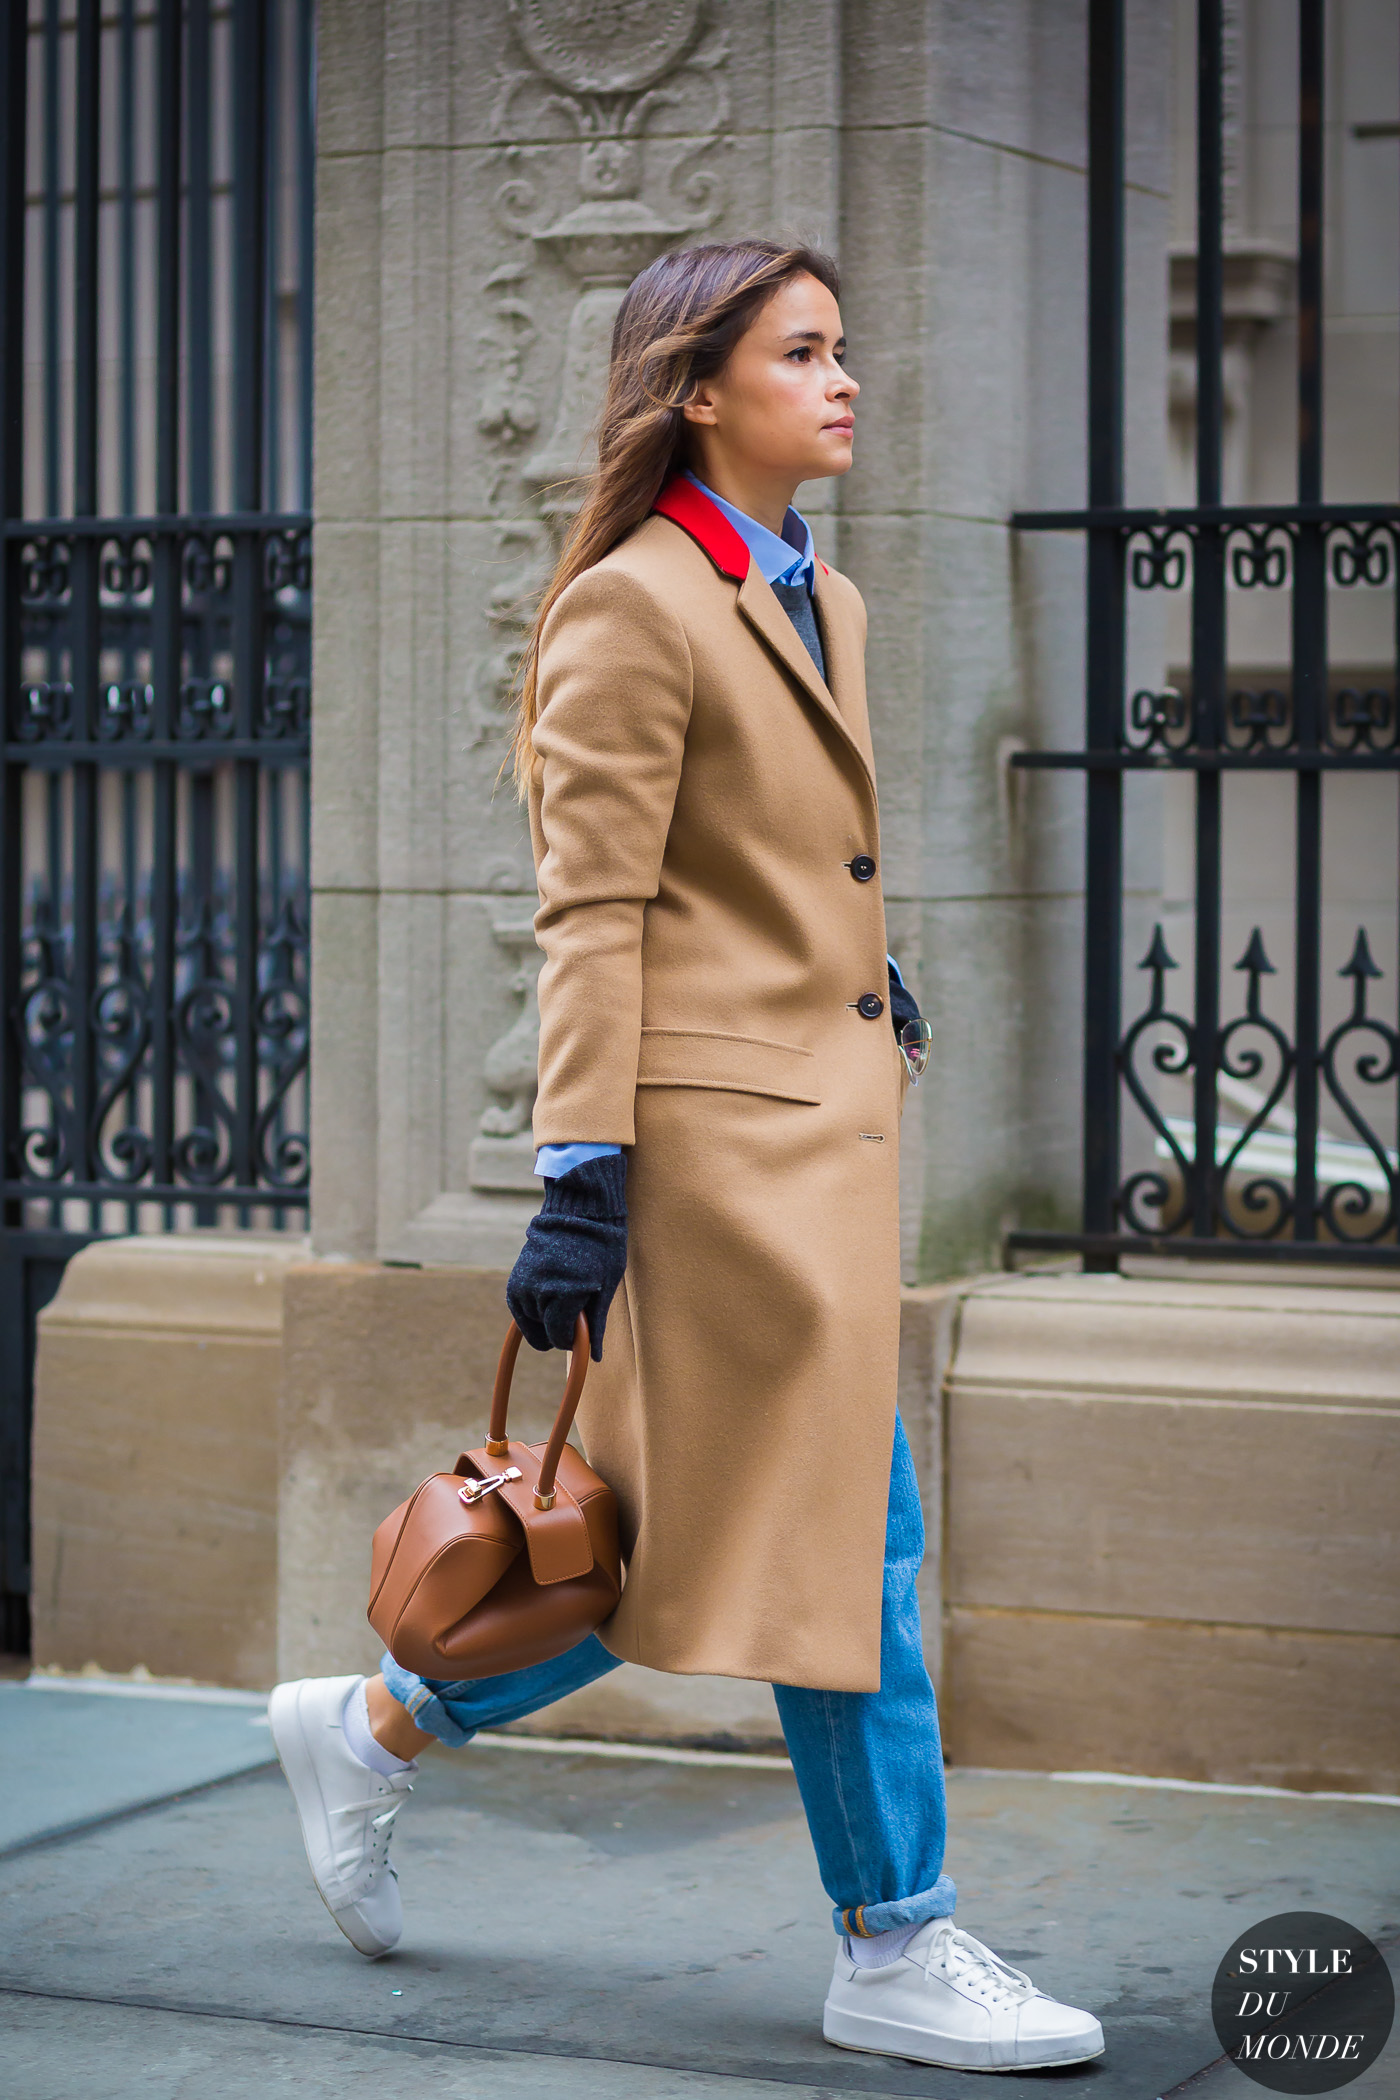 miroslava-duma-mira-duma-by-styledumonde-street-style-fashion-photography